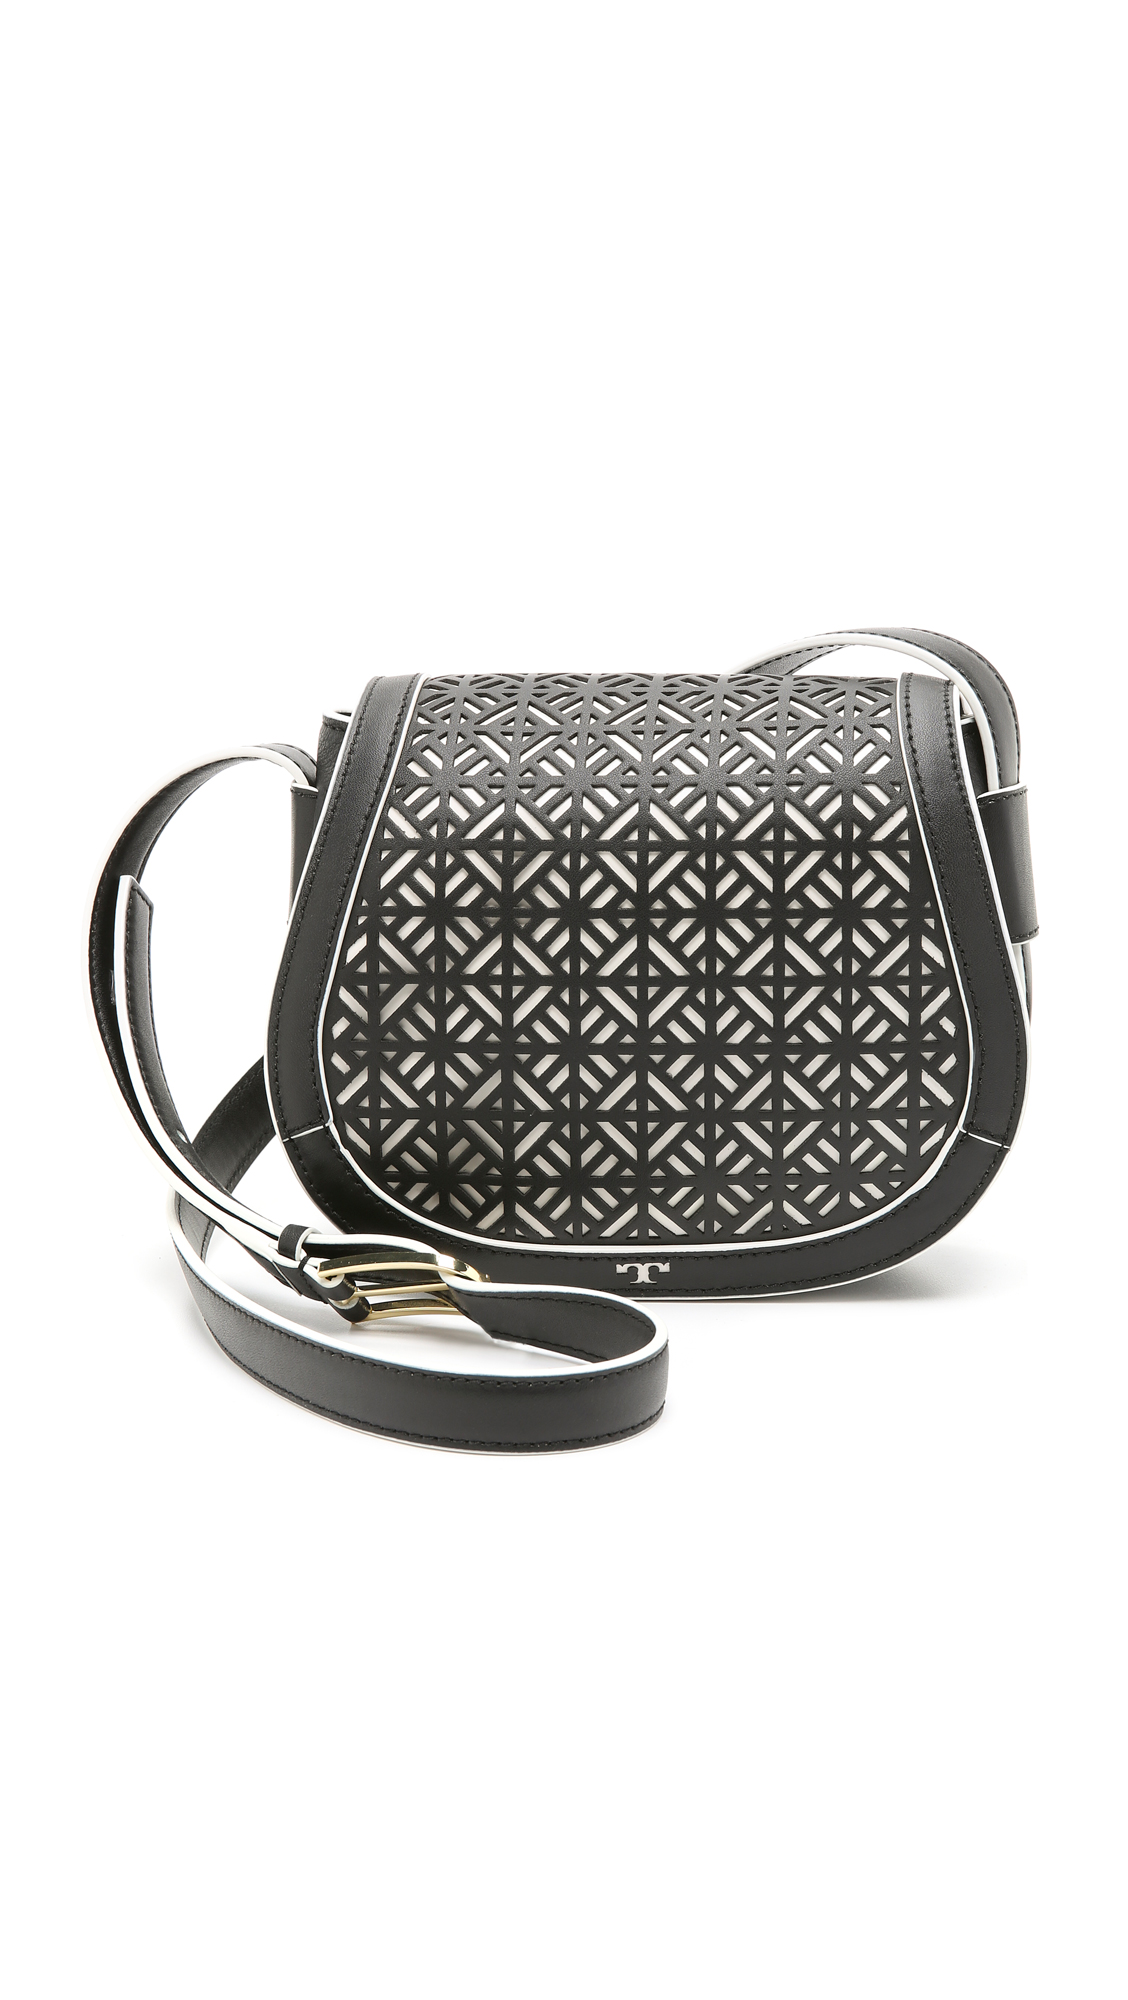 faa2fe6f94a0 Tory Burch Fret T Small Saddle Bag on PopScreen